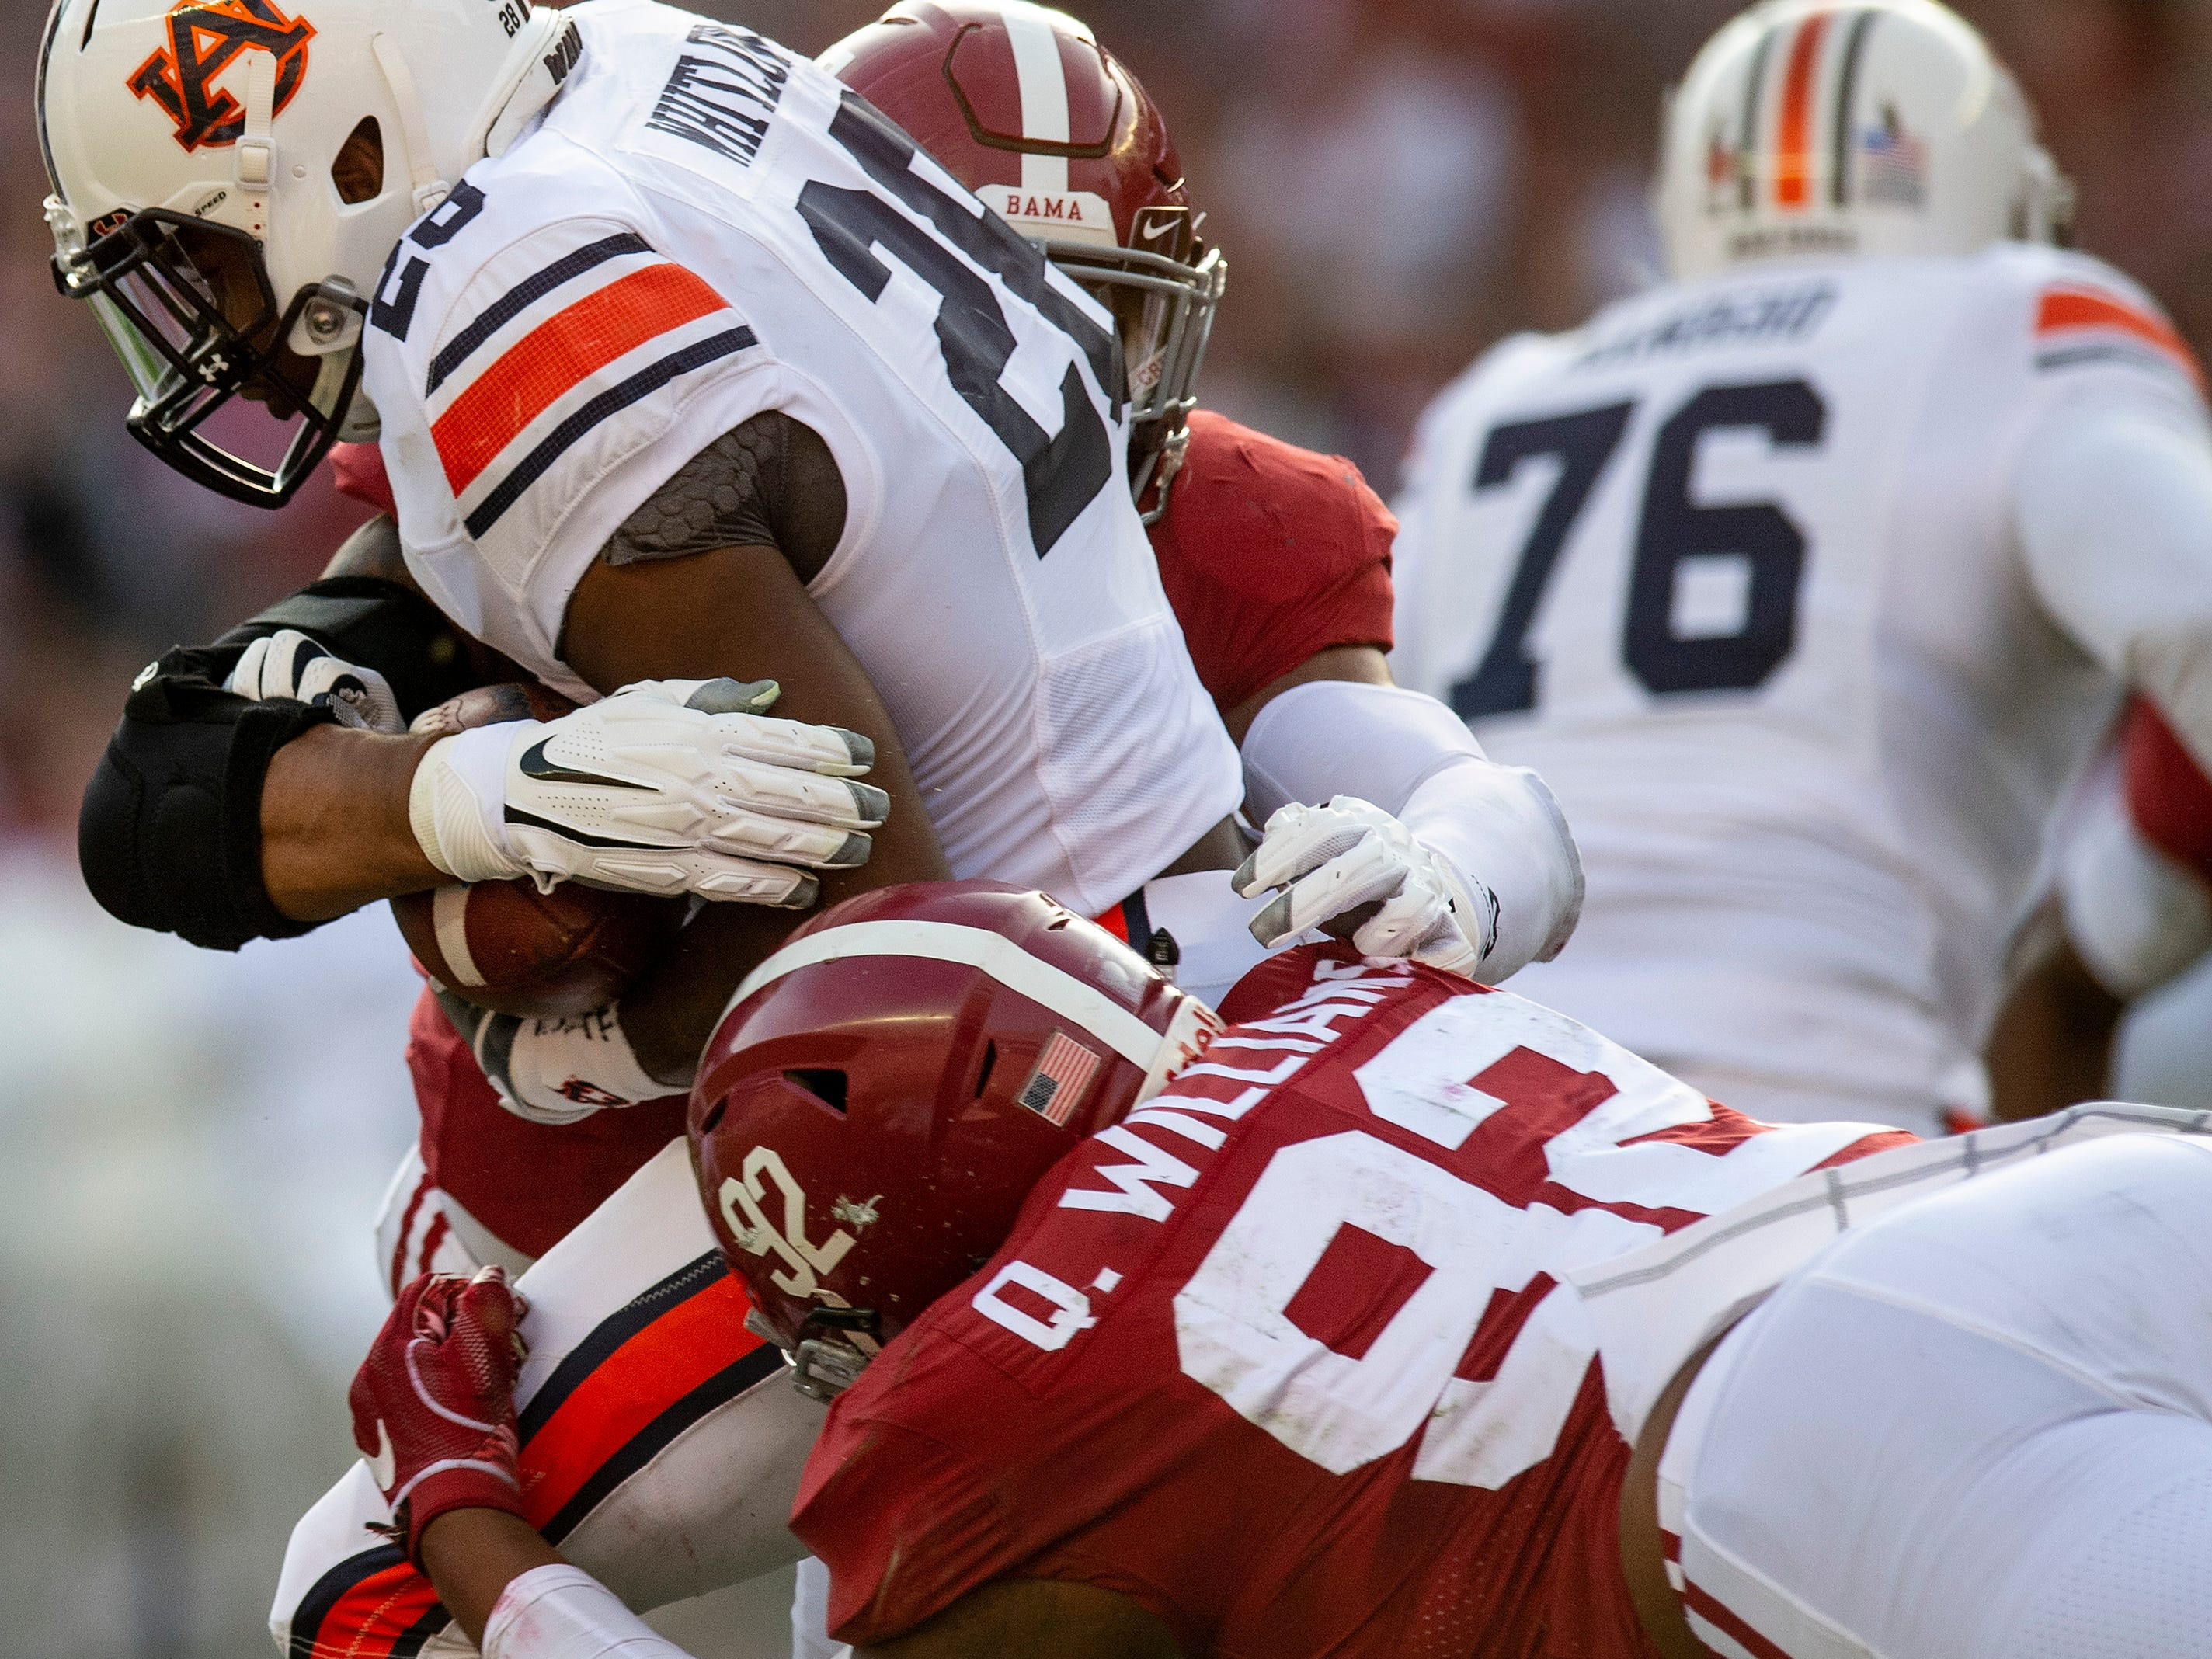 Alabama linebacker Christian Miller (47) and defensive lineman Quinnen Williams (92) wrap up Auburn running back JaTarvious Whitlow (28) in first half action during the Iron Bowl at Bryant-Denny Stadium in Tuscaloosa, Ala., on Saturday November 24, 2018.